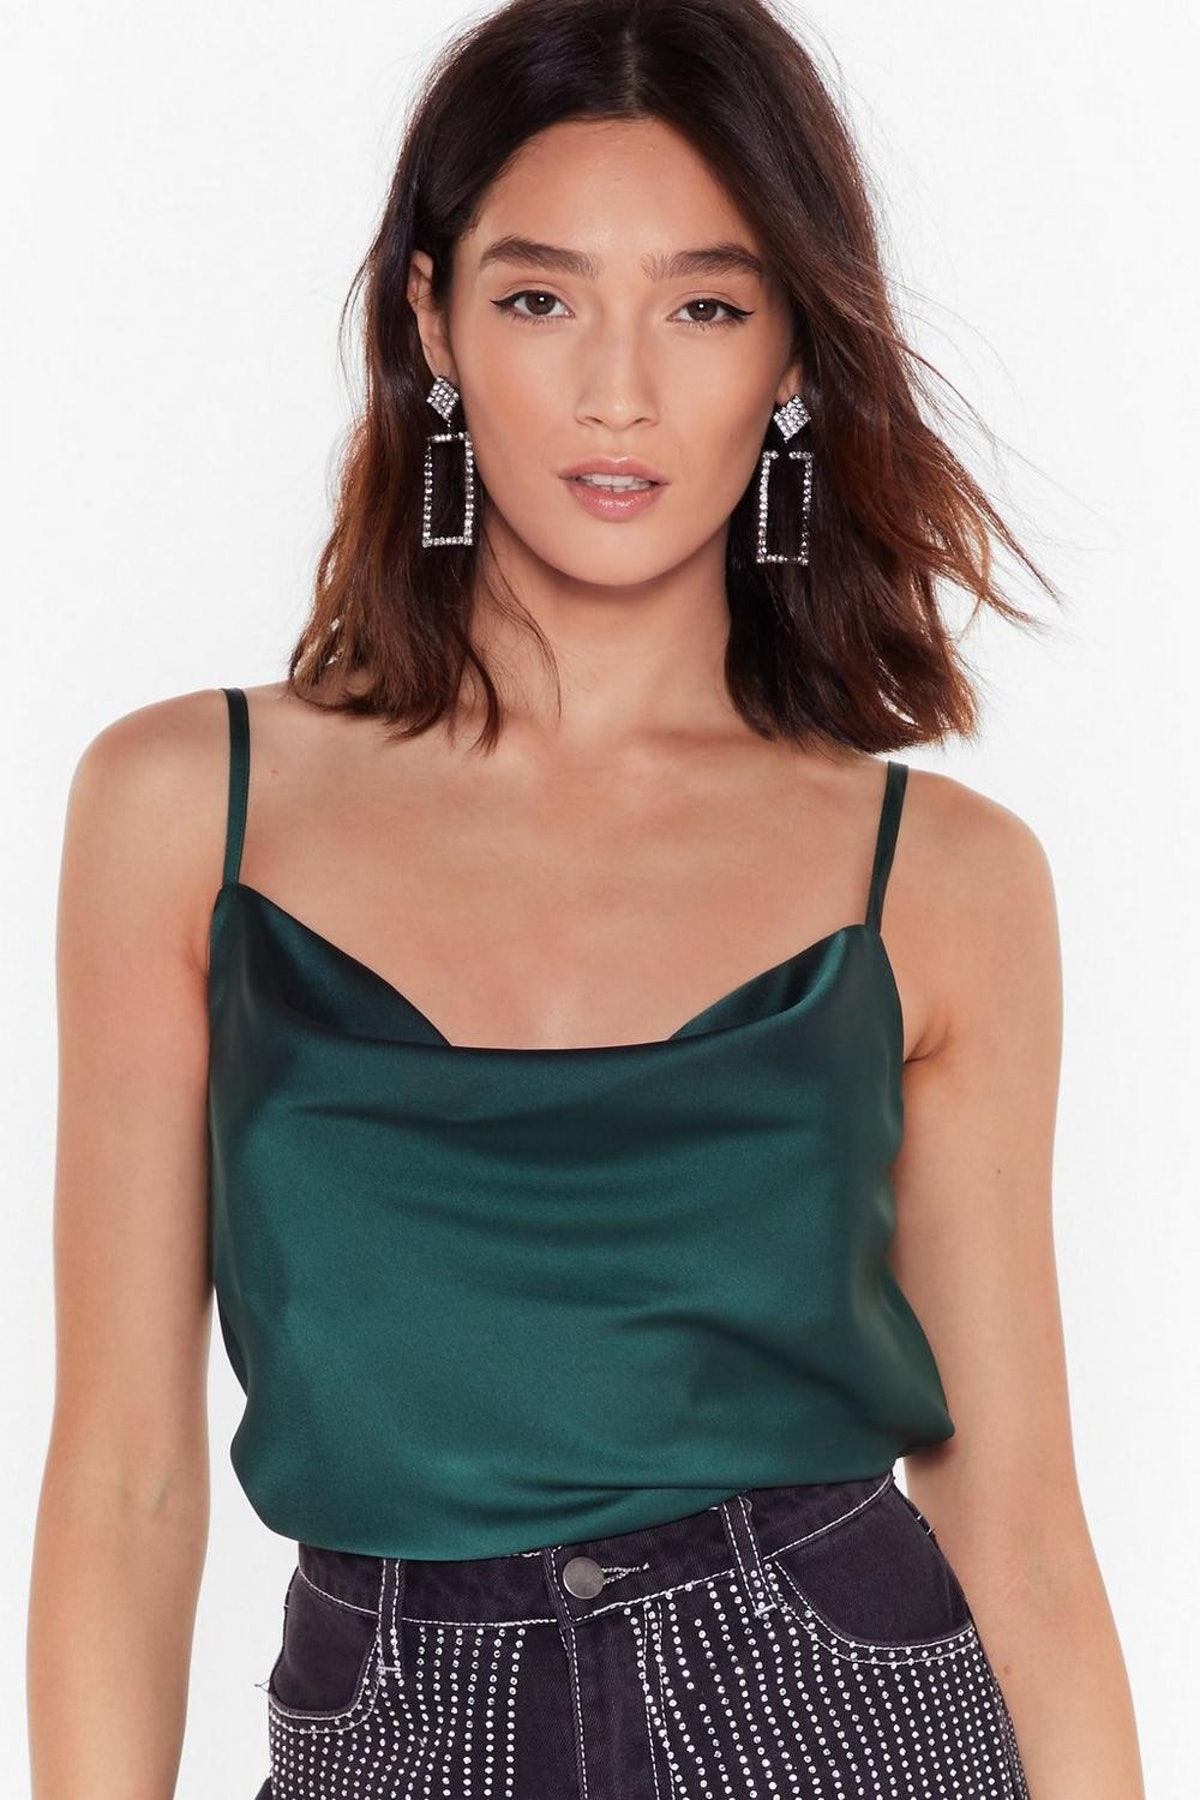 Nasty Gal Don't Cowl Your Ex Satin Cami Top